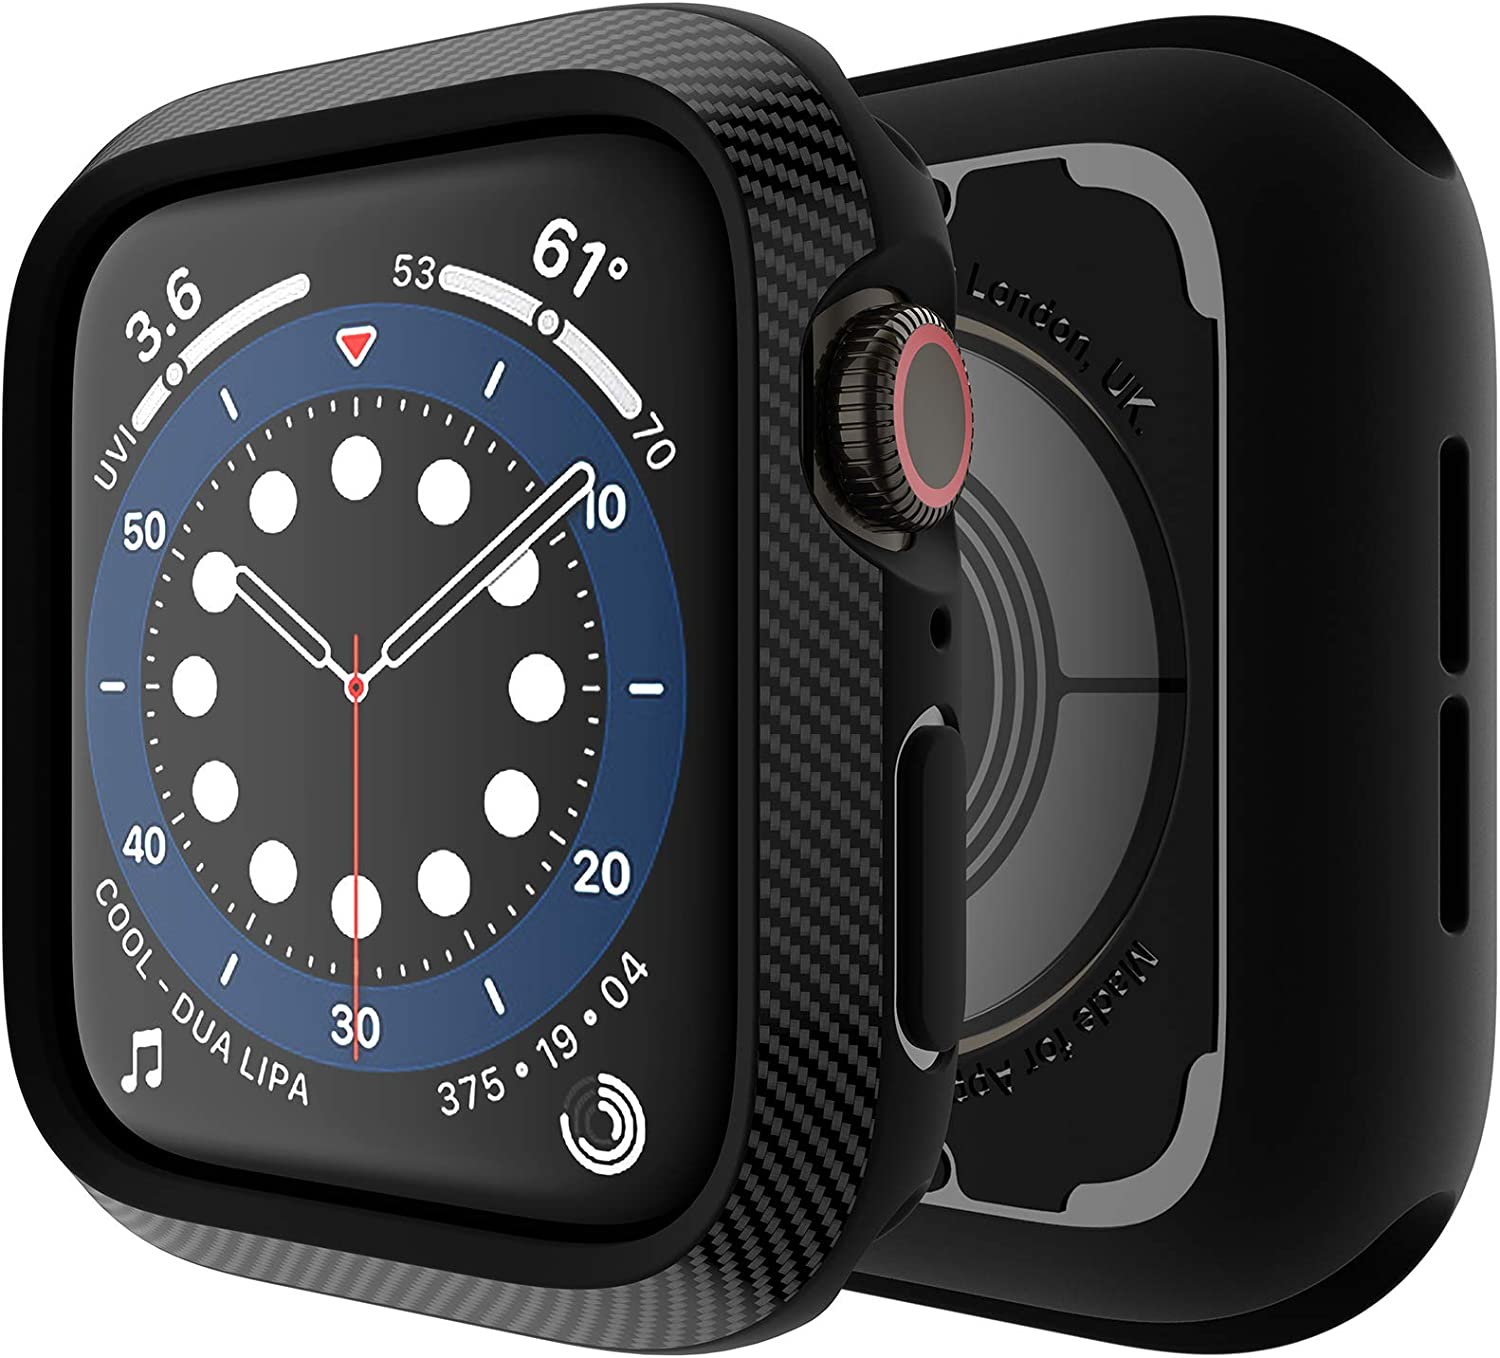 Techump Slim Carbon Fiber Pattern Design Matte Finish TPU Case Impactio Compatible with Apple Watch Series 6/SE/5/4 44mm, Ultra-Thin Protective Cover Bumper Compatible with iWatch 6/SE/5/4 – Black